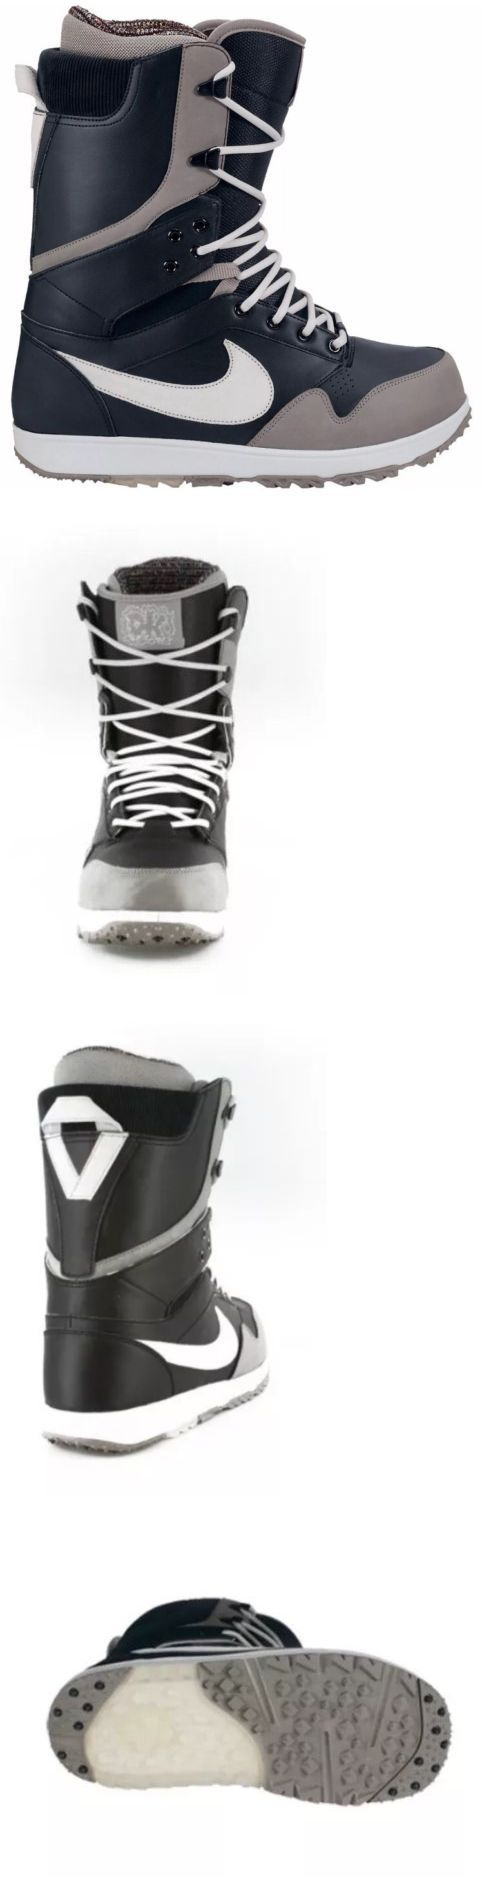 Boots 36292: New Nike Zoom Danny Kass Snowboard Mens Boots Black Gray Size 10 -> BUY IT NOW ONLY: $229.99 on eBay!